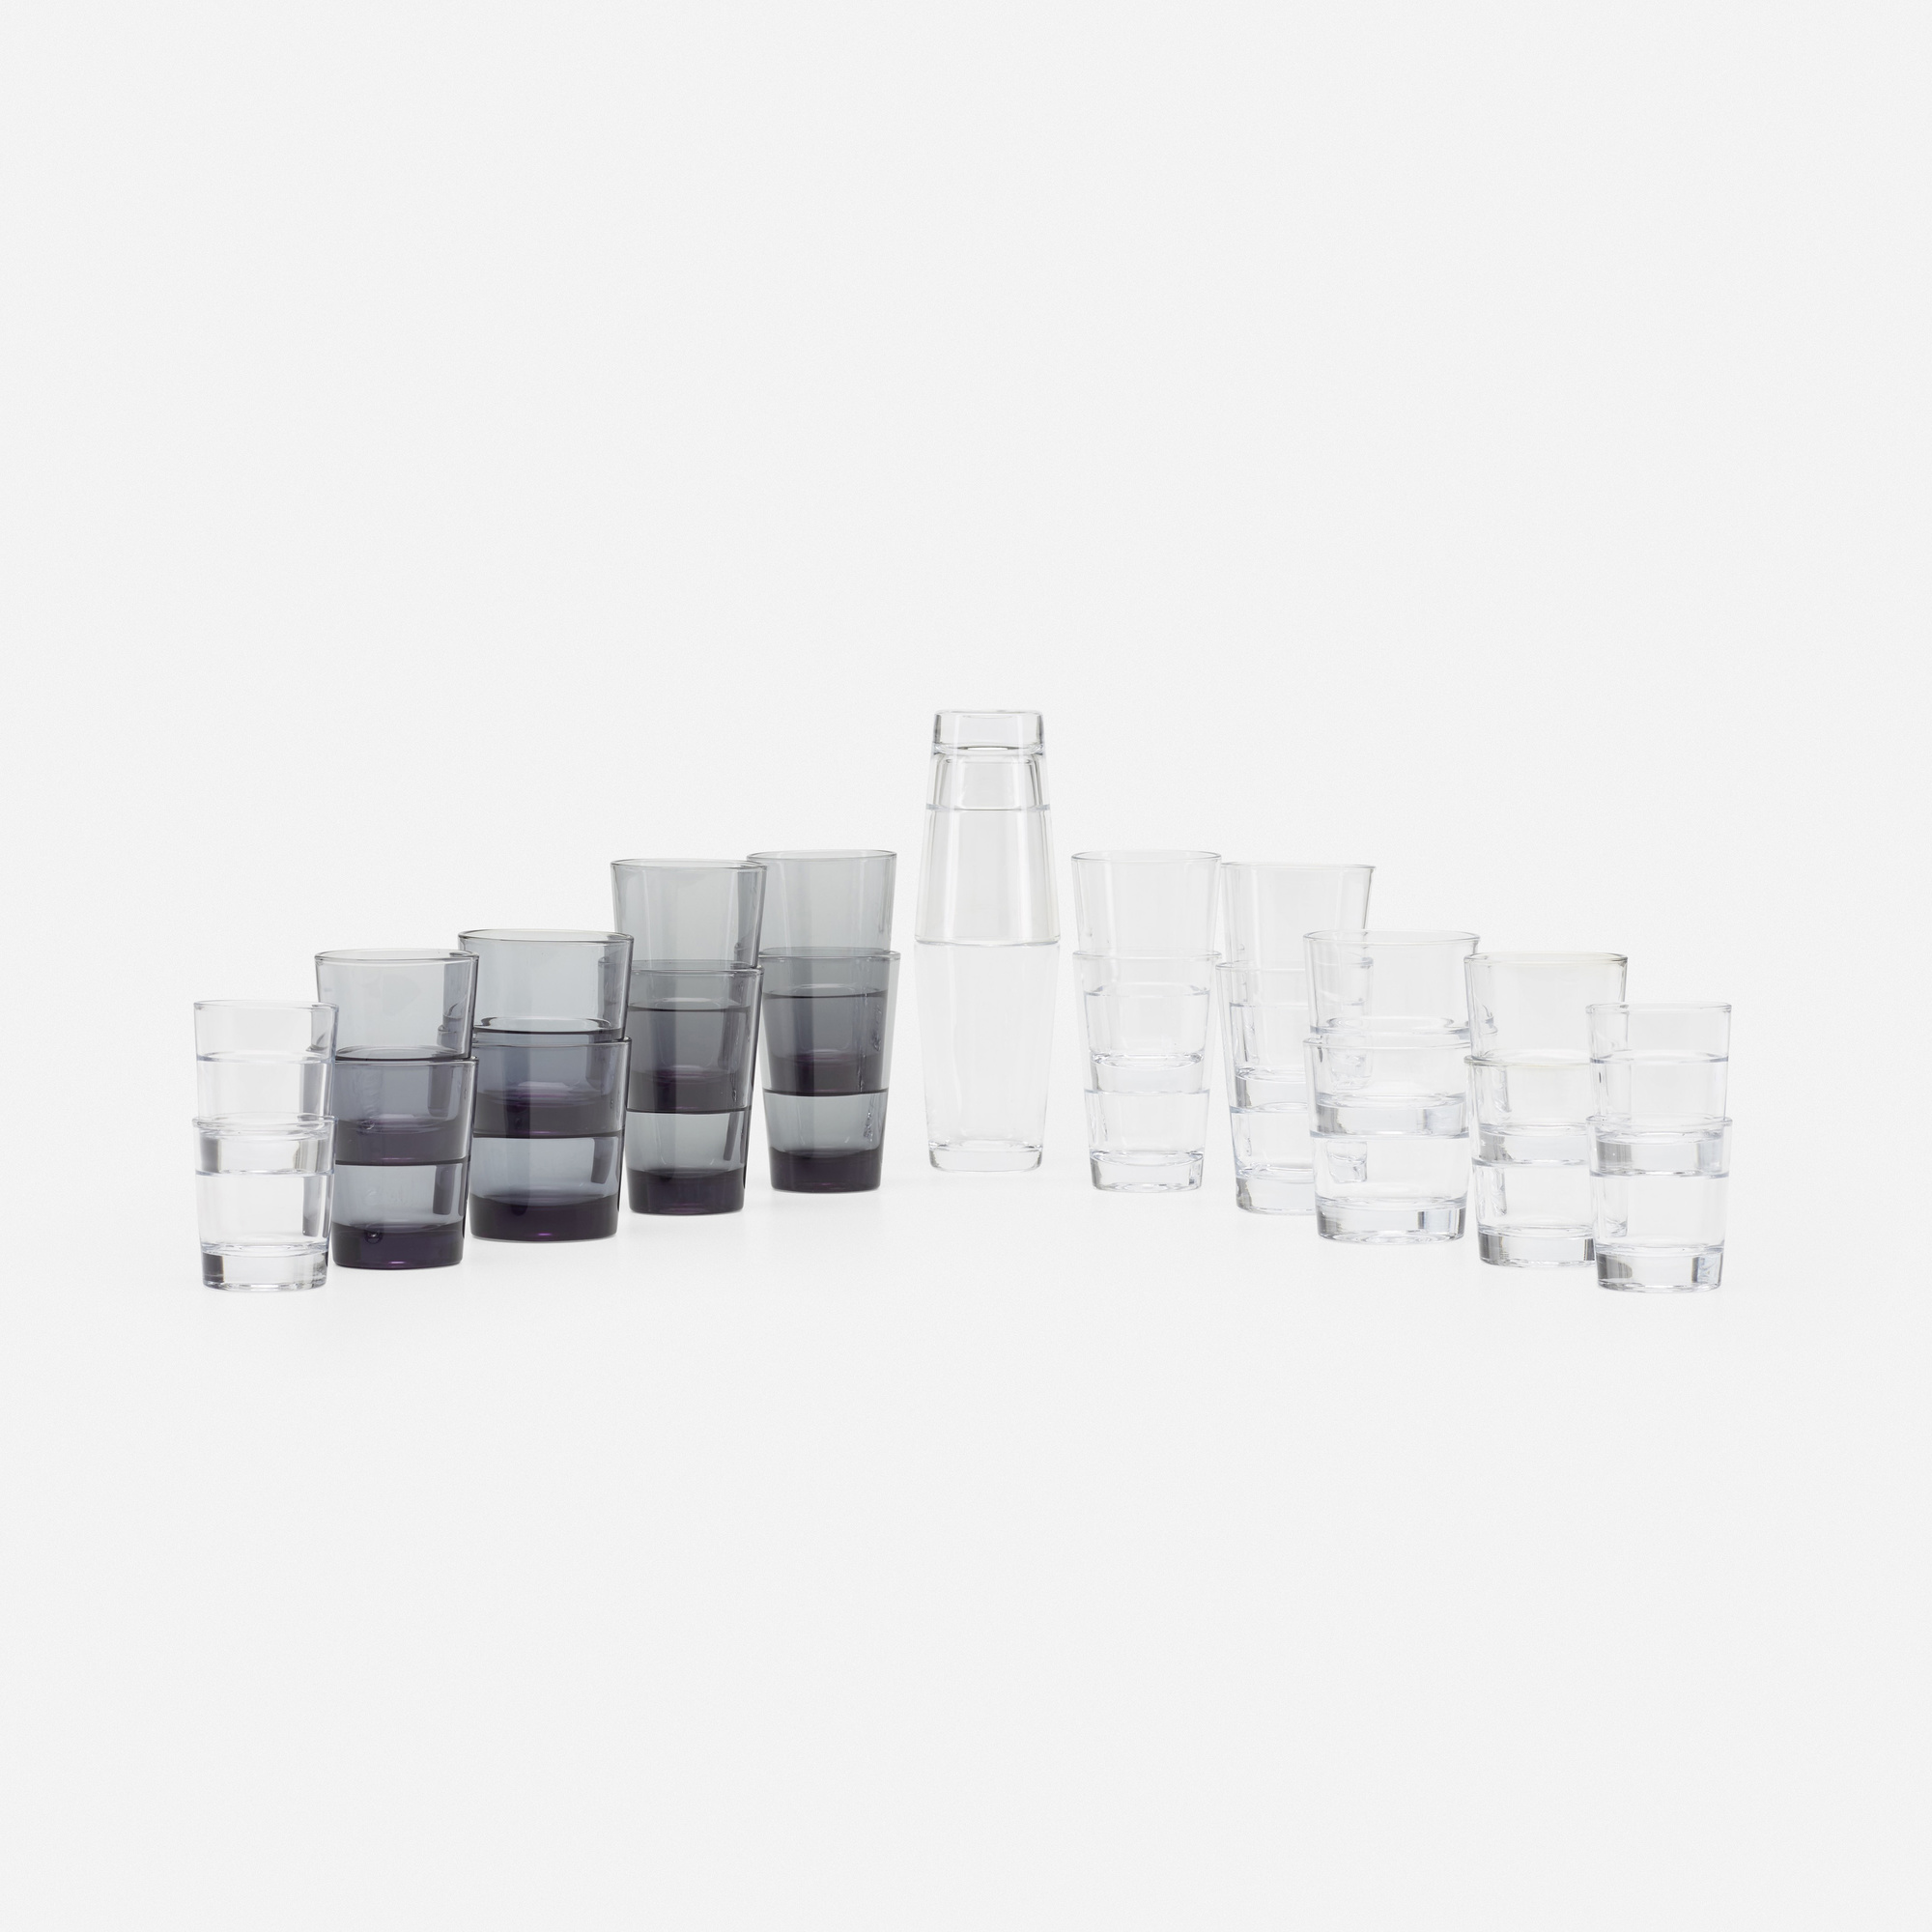 313: Konstantin Grcic / collection of twenty Relations glasses and cocktail shaker (1 of 2)